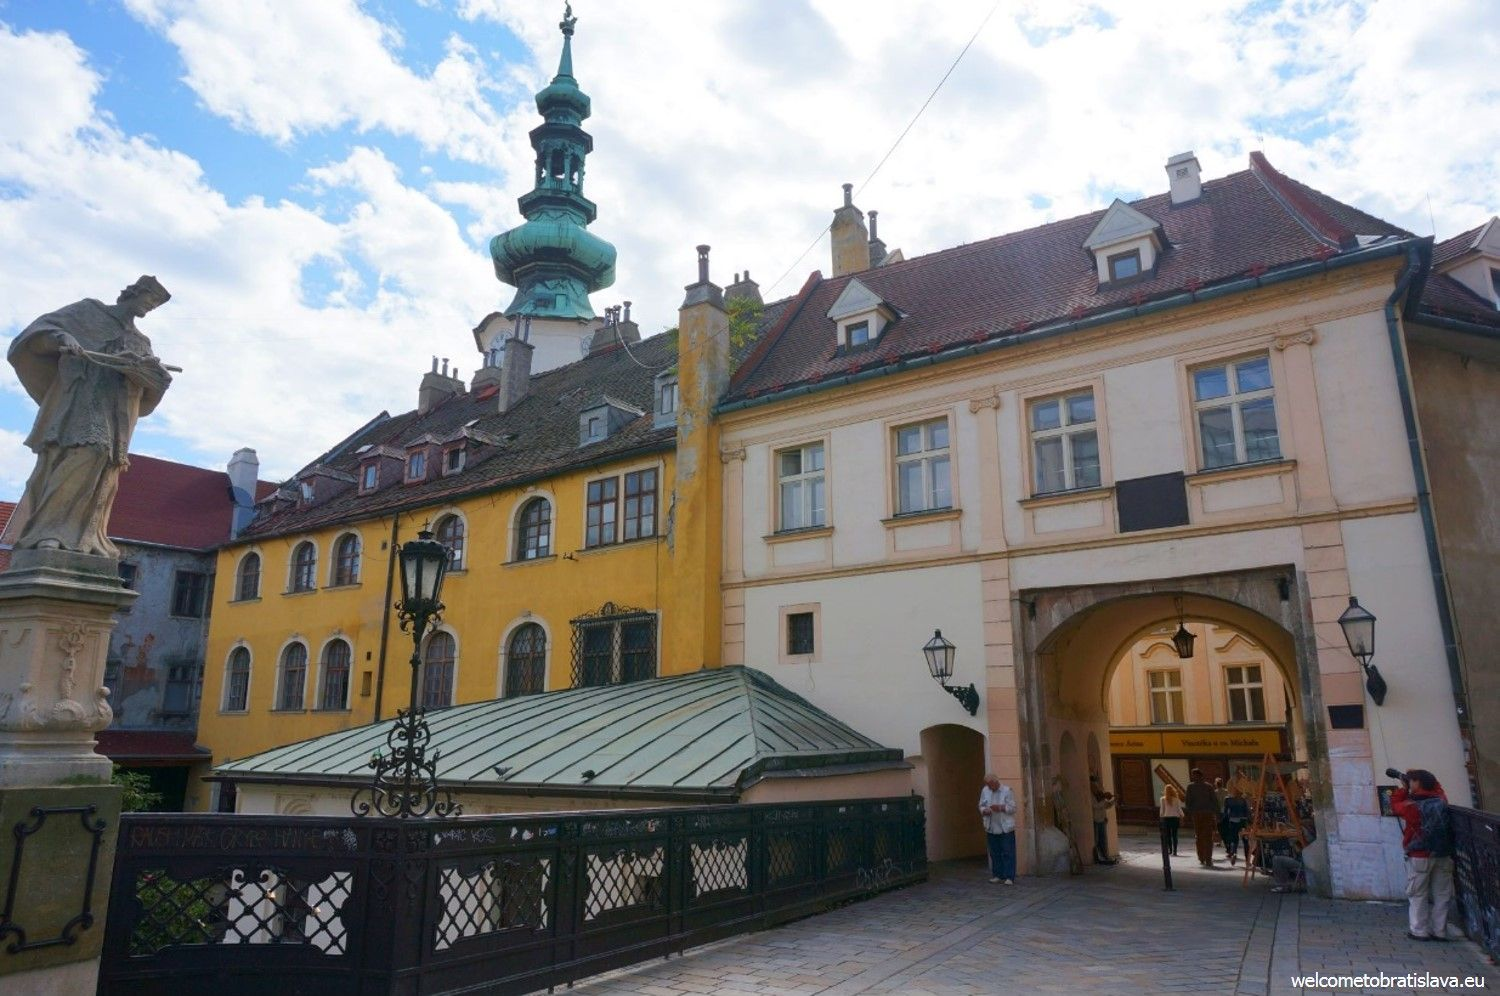 Michael's gate and tower - the entrance to Bratislava's Old Town